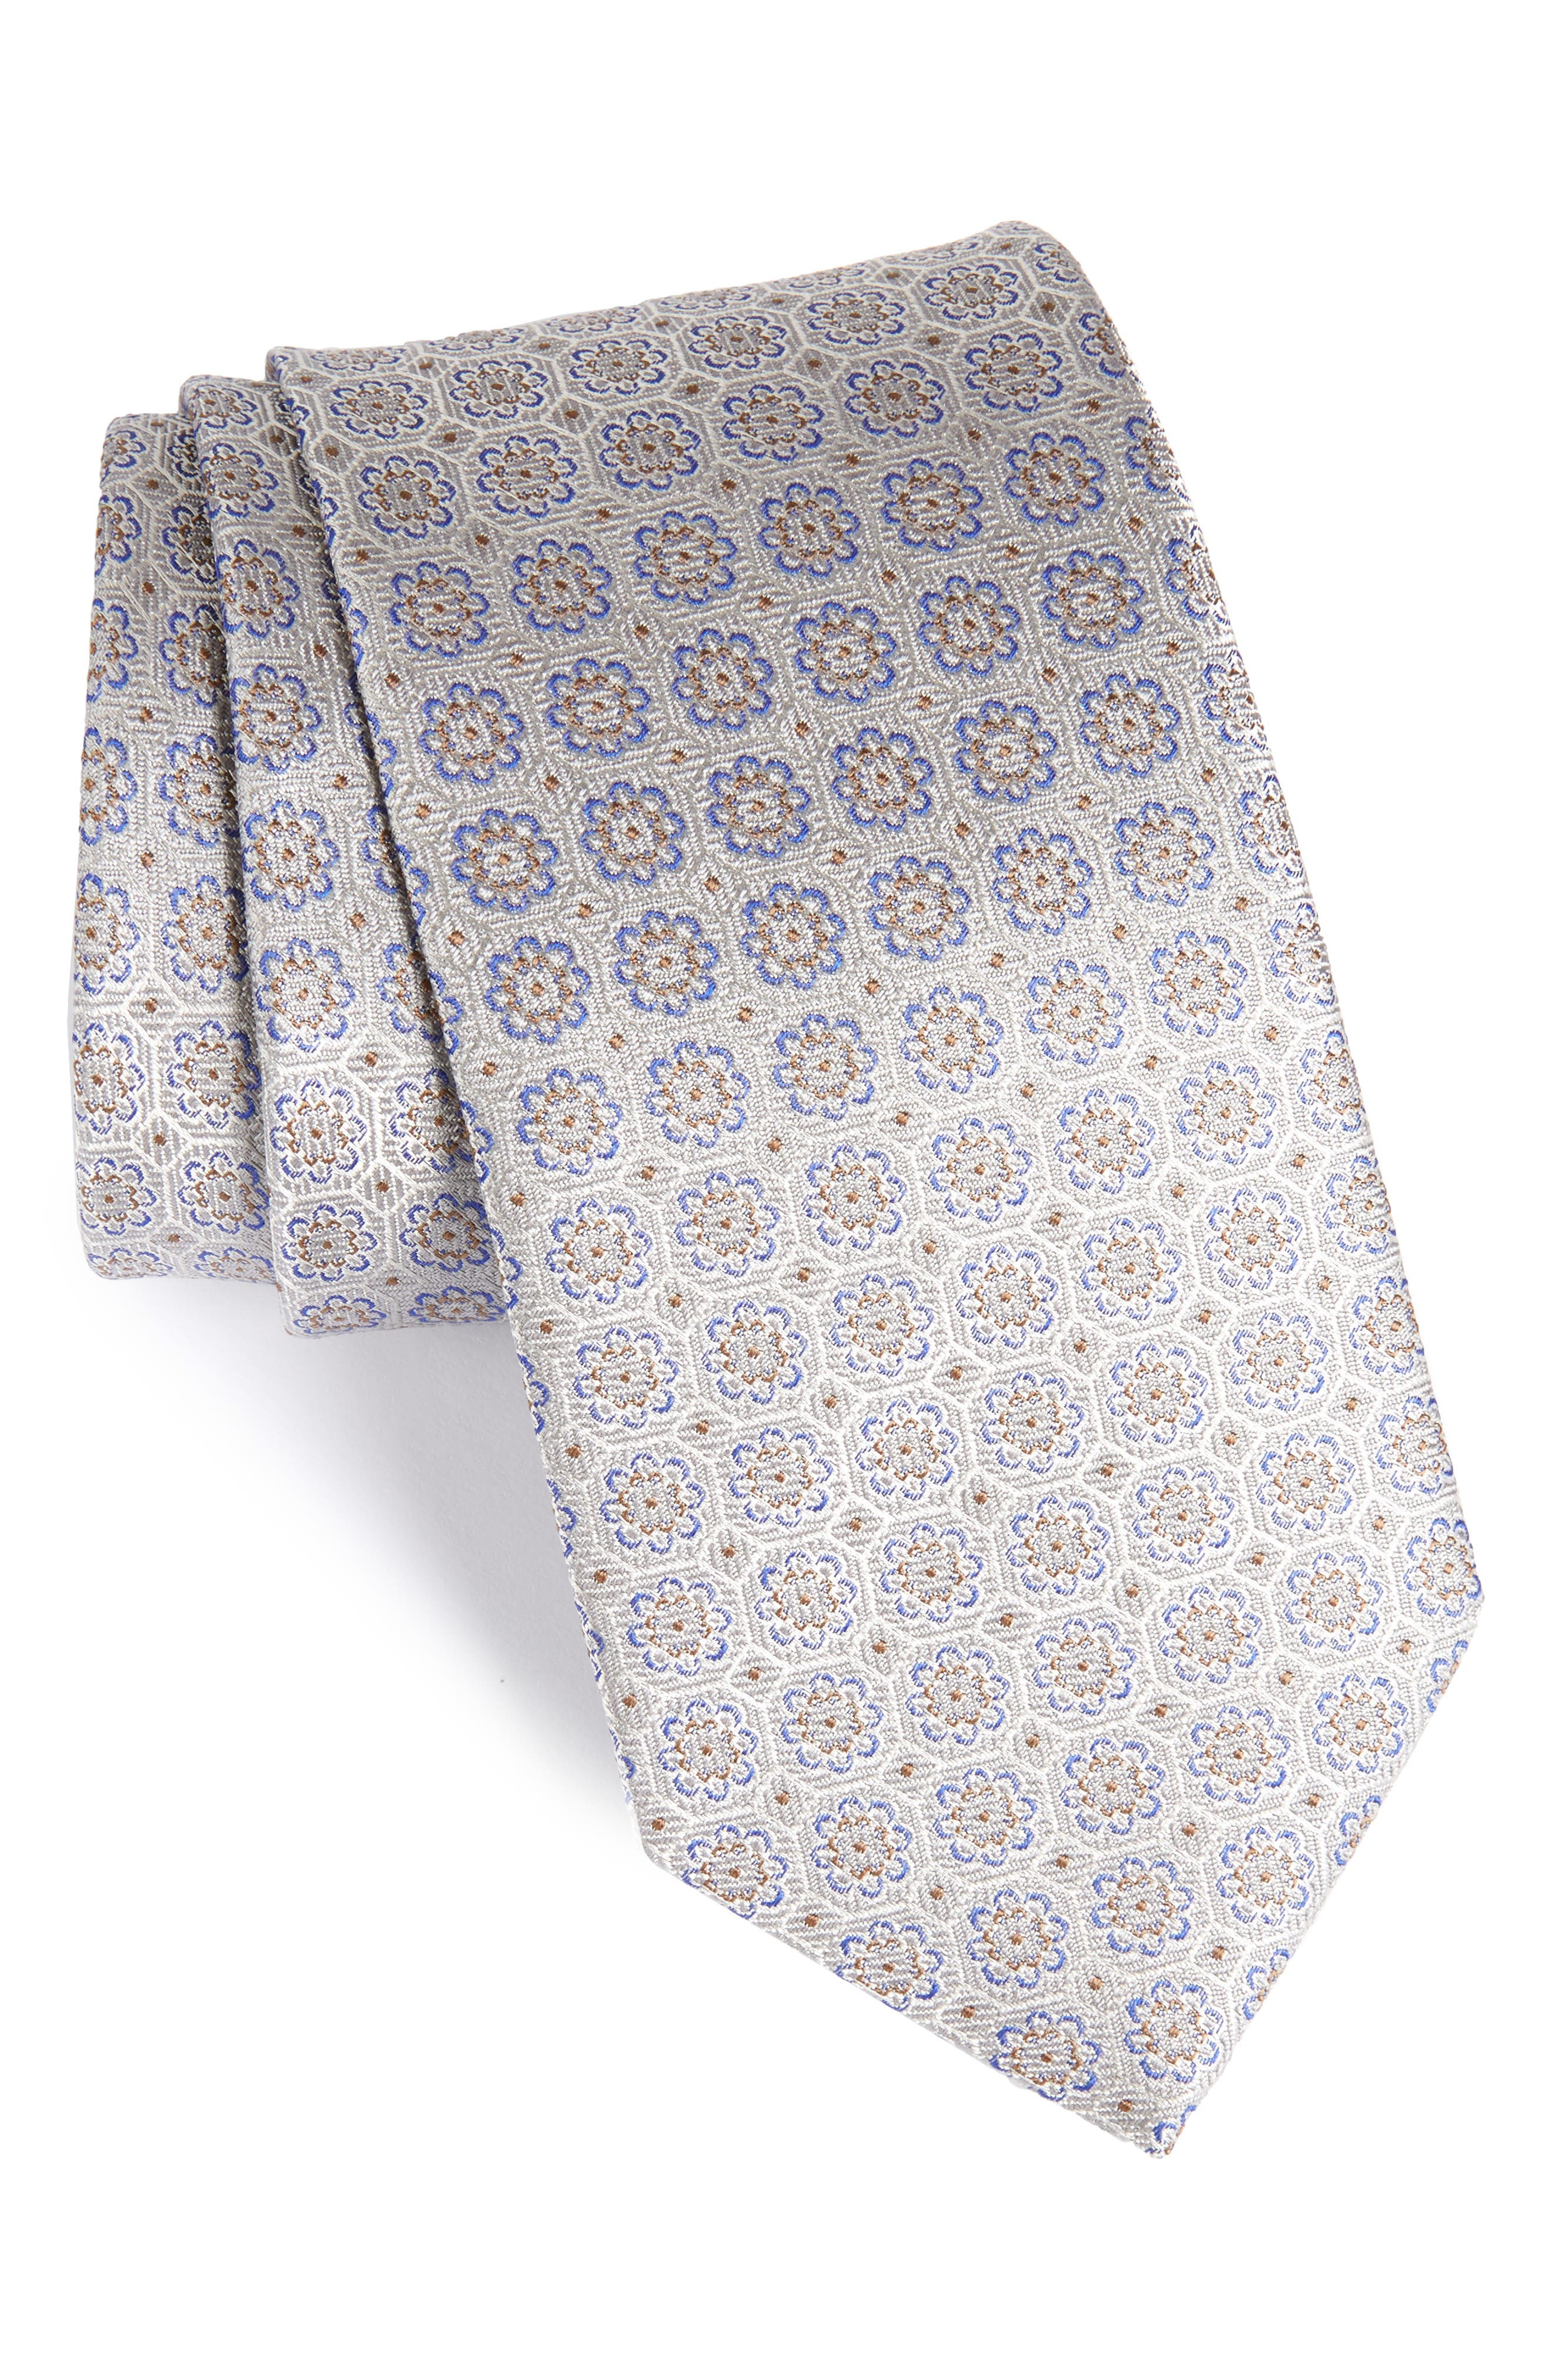 Medallion Silk Tie,                             Main thumbnail 1, color,                             020